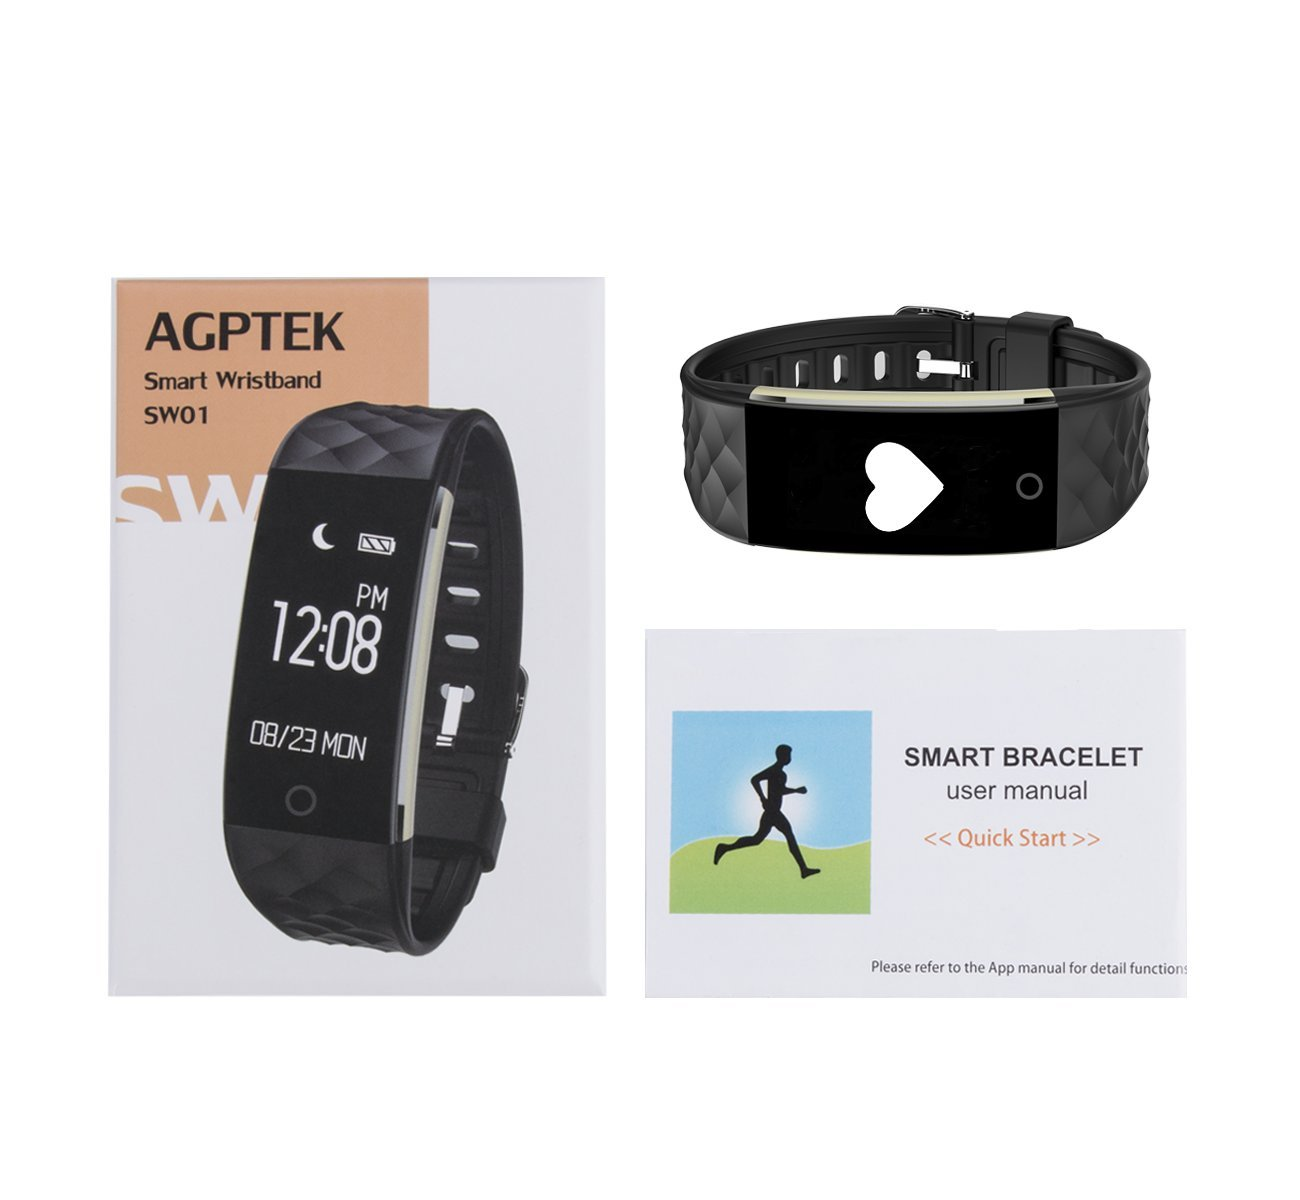 AGPTEK Fitness Tracker Watch, Heart Rate Monitor Activity Wristband Pedometer Sleep Monitor Waterproof Bluetooth Smart Band for iPhone Android Phones, ...